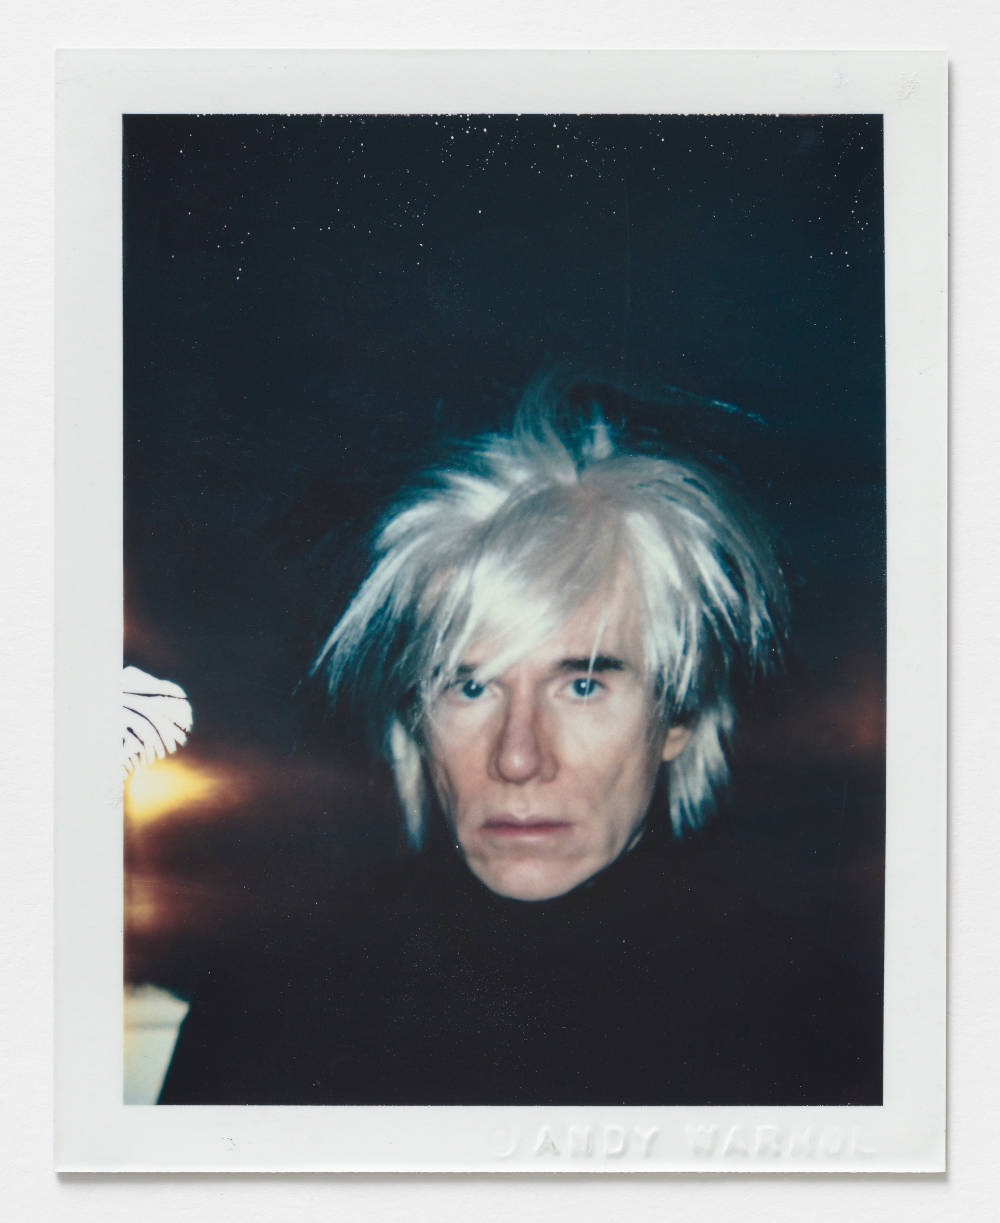 Andy Warhol, Self-Portrait in Fright Wig, 1986. Polacolor ER 10.8 x 8.5 cm / 4.3 x 3.4 in. [H x W] Embossed recto lower right ©ANDY WARHOL; inscribed verso upper left in pencil FA02.00197; stamped verso lower left and lower right Authorized by the Andy Warhol Foundation for the Visual Arts, The Estate of Andy Warhol. © 2018 The Andy Warhol Foundation for the Visual Arts, Inc. / Licensed by DACS, London. Courtesy BASTIAN, London